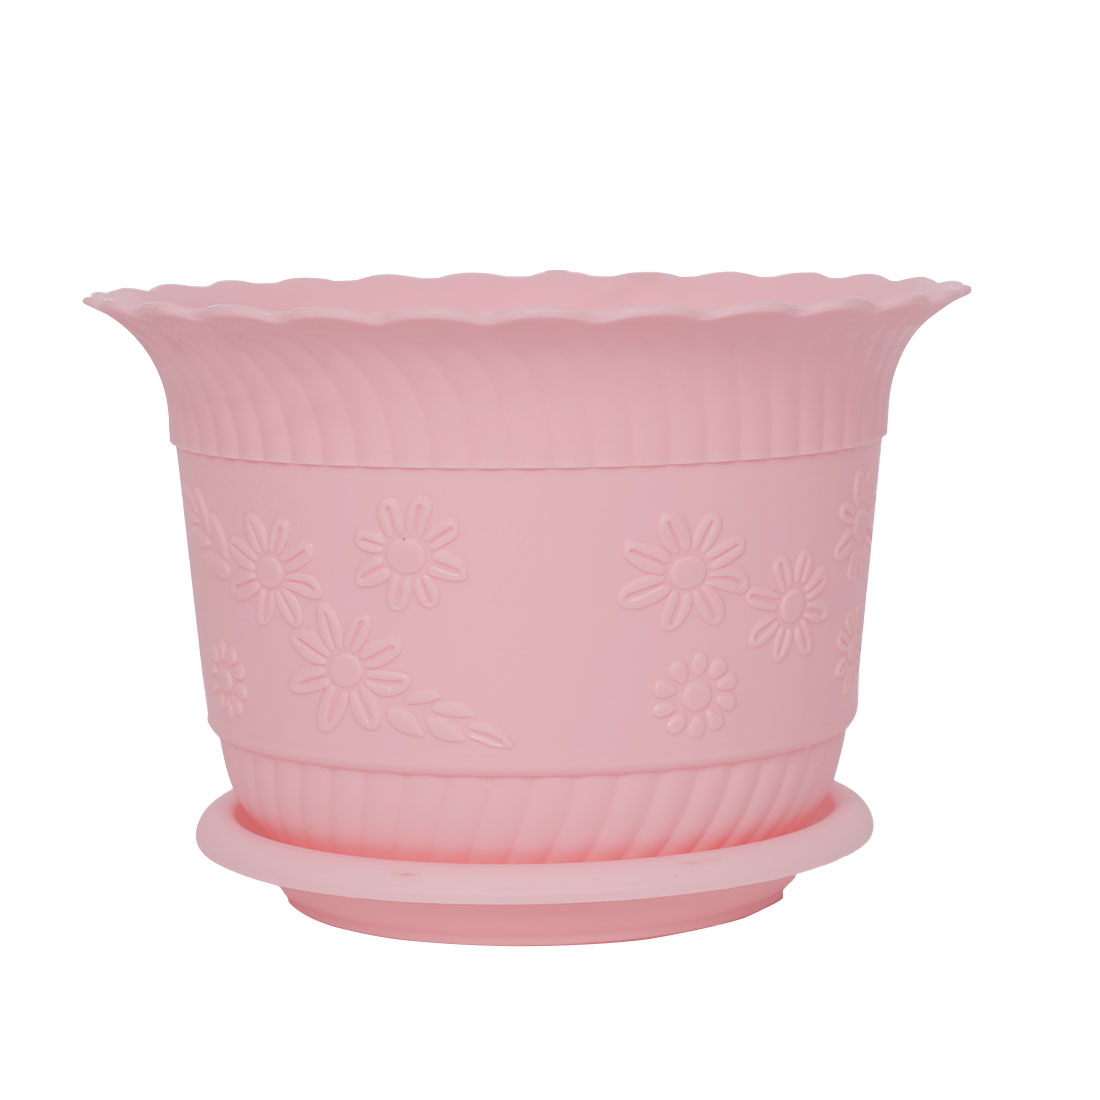 Home Office Garden Plastic Floral Pattern Plant Flower Pot Pink w Tray